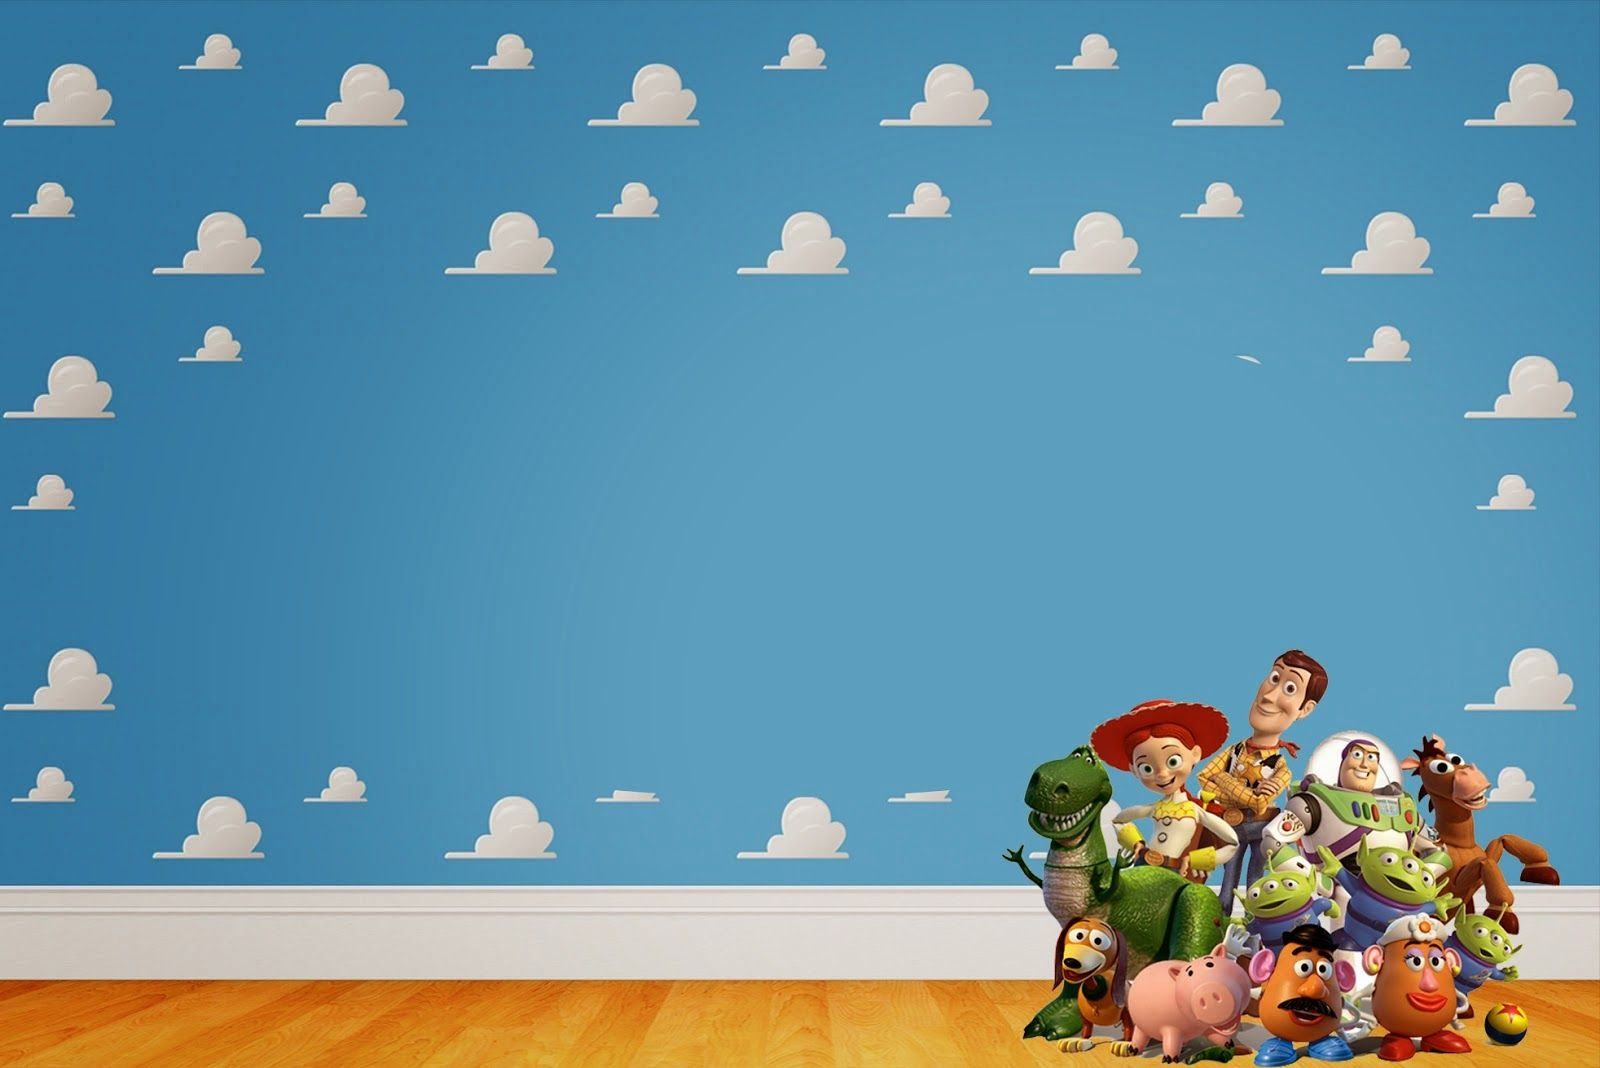 Toy Story 3: Free Printable Invitations. | Downloads | Toy Story - Toy Story Birthday Card Printable Free